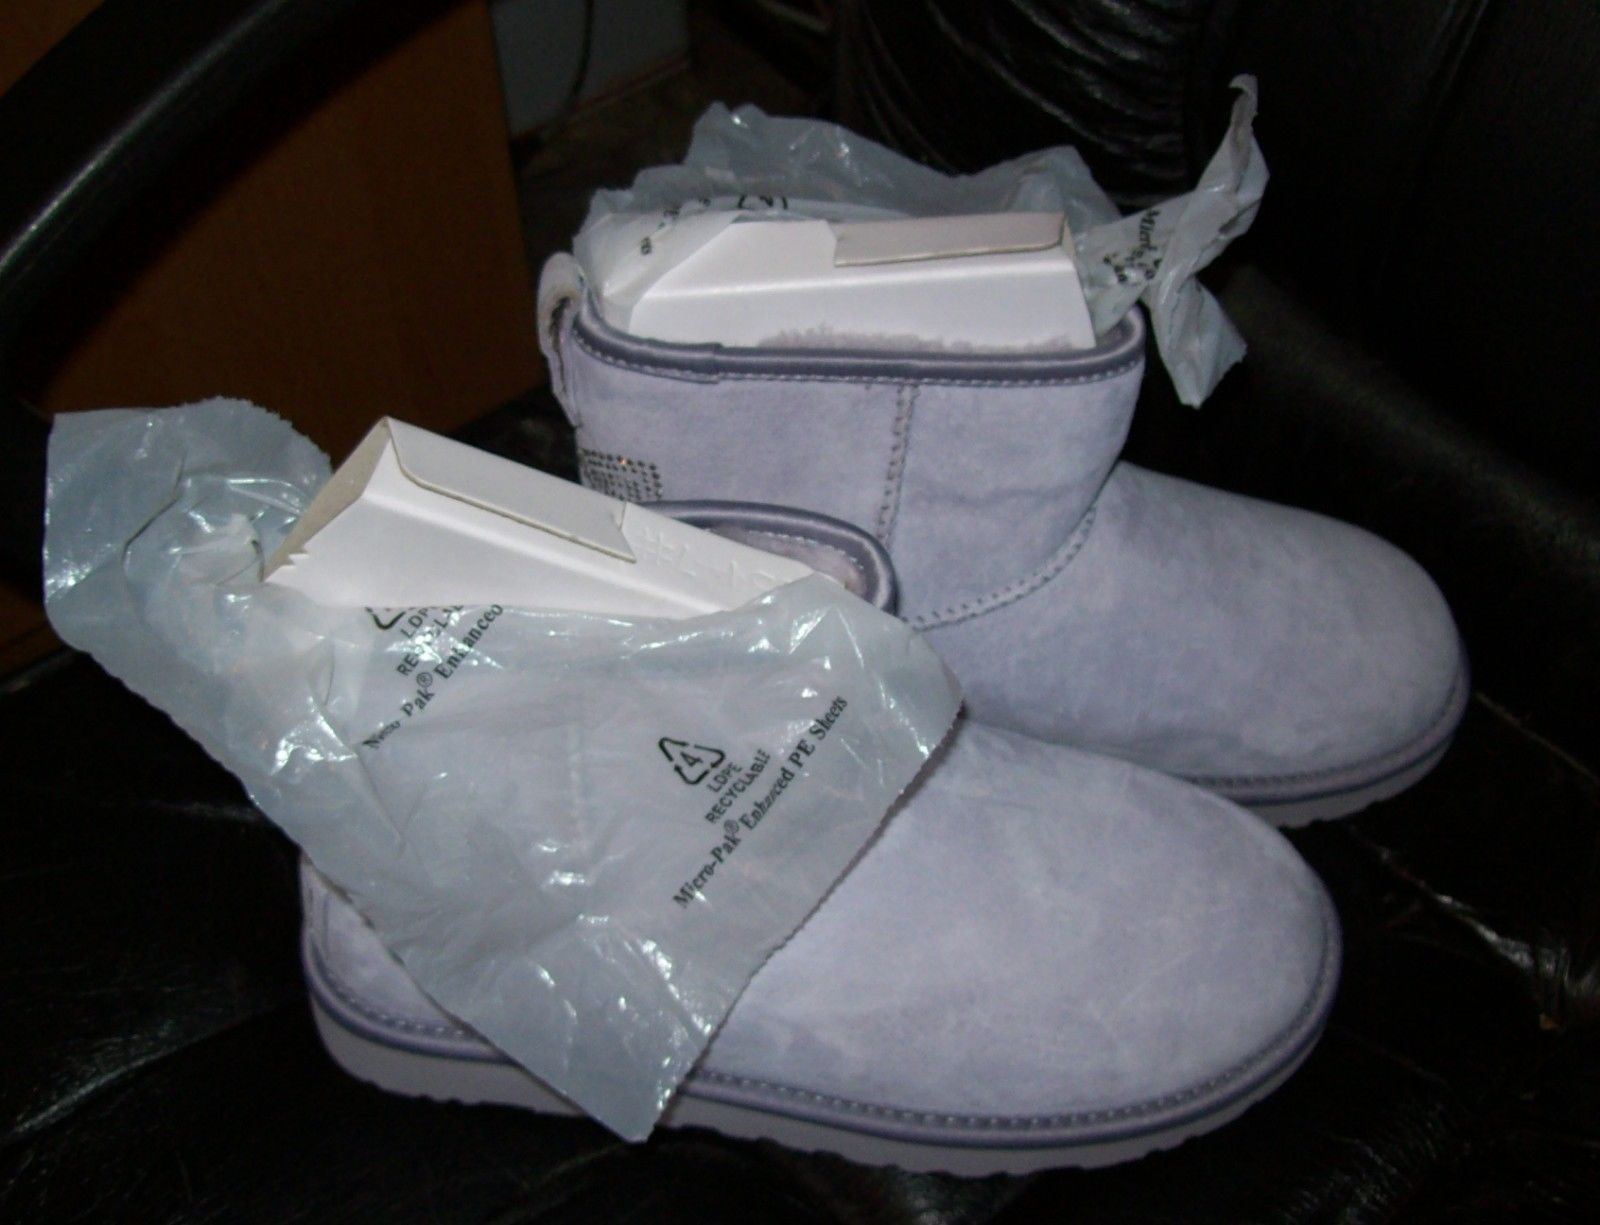 UGG Australia Womens Classic Mini Lilac Purple Sheepskin Boots US 7 UK 5.5 EU 38